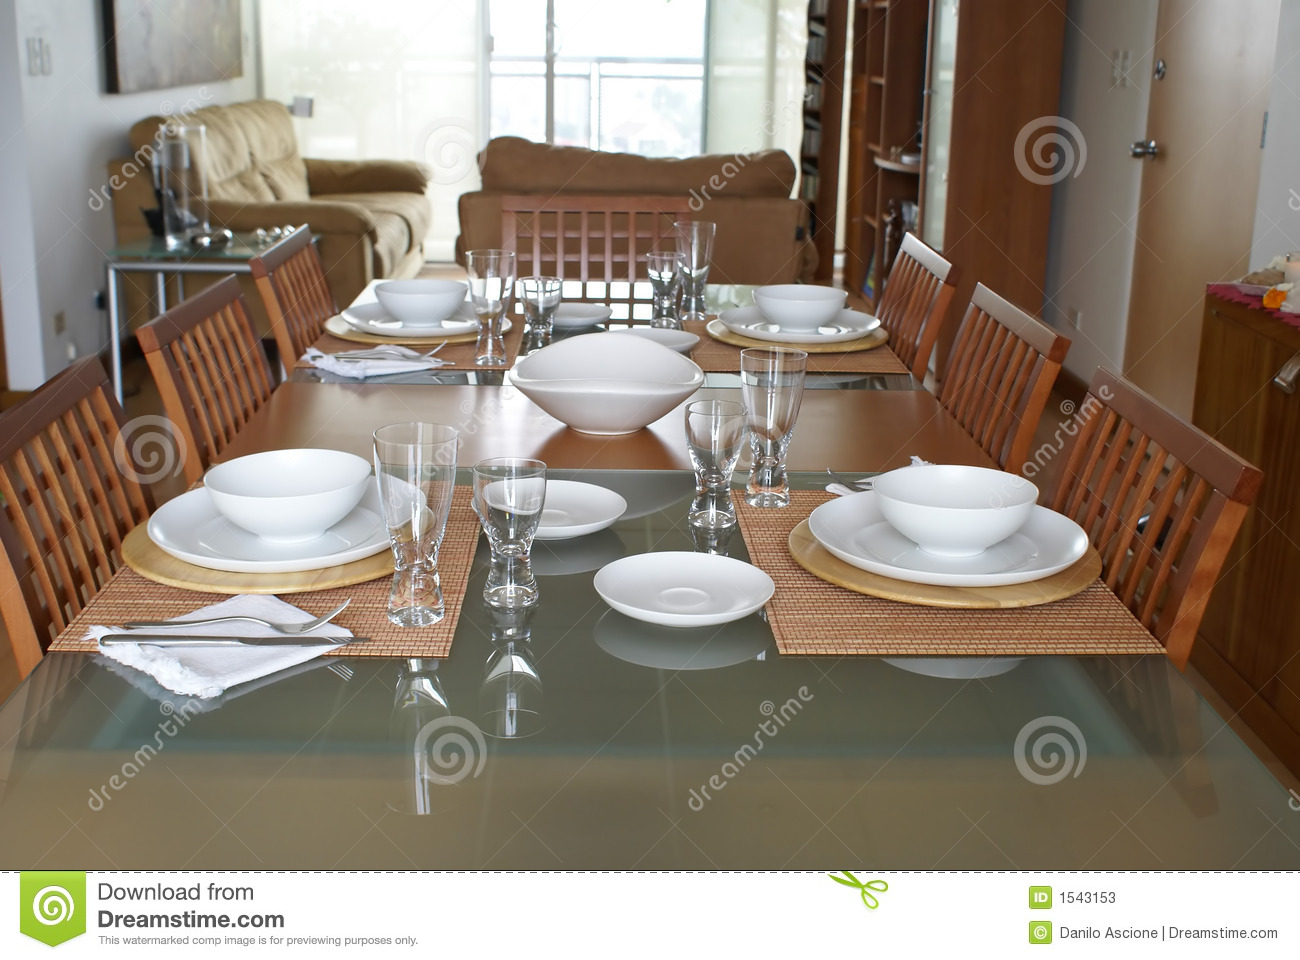 Dining room with table setting stock image image 1543153 - Table salle a manger 8 personnes ...